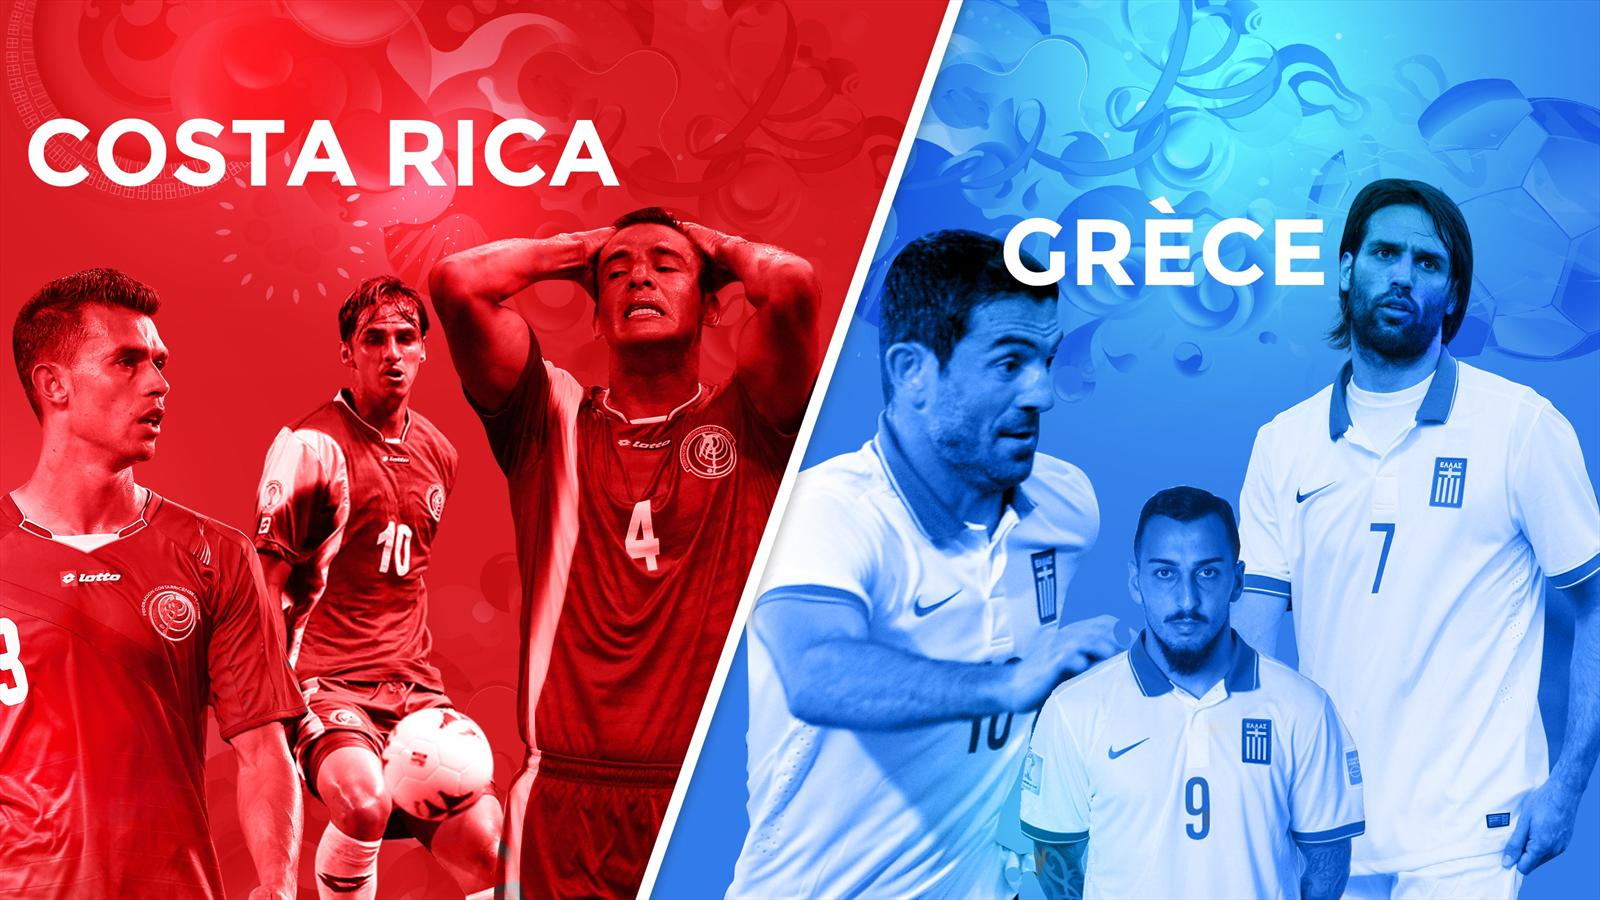 Match Costa Rica Grèce en direct live streaming